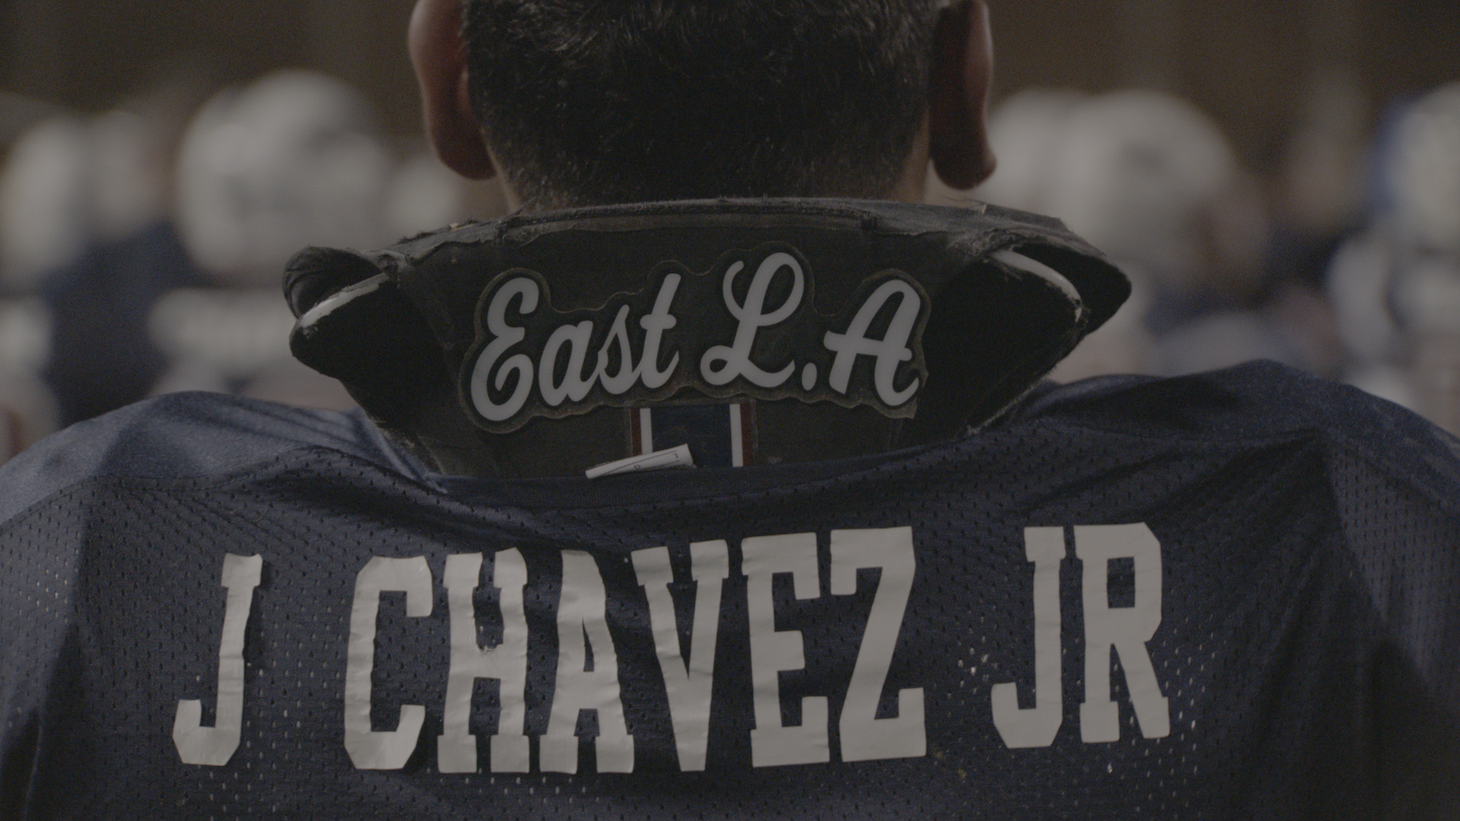 """J. Chavez Jr. dons an East LA jersey in """"The All-Americans."""""""